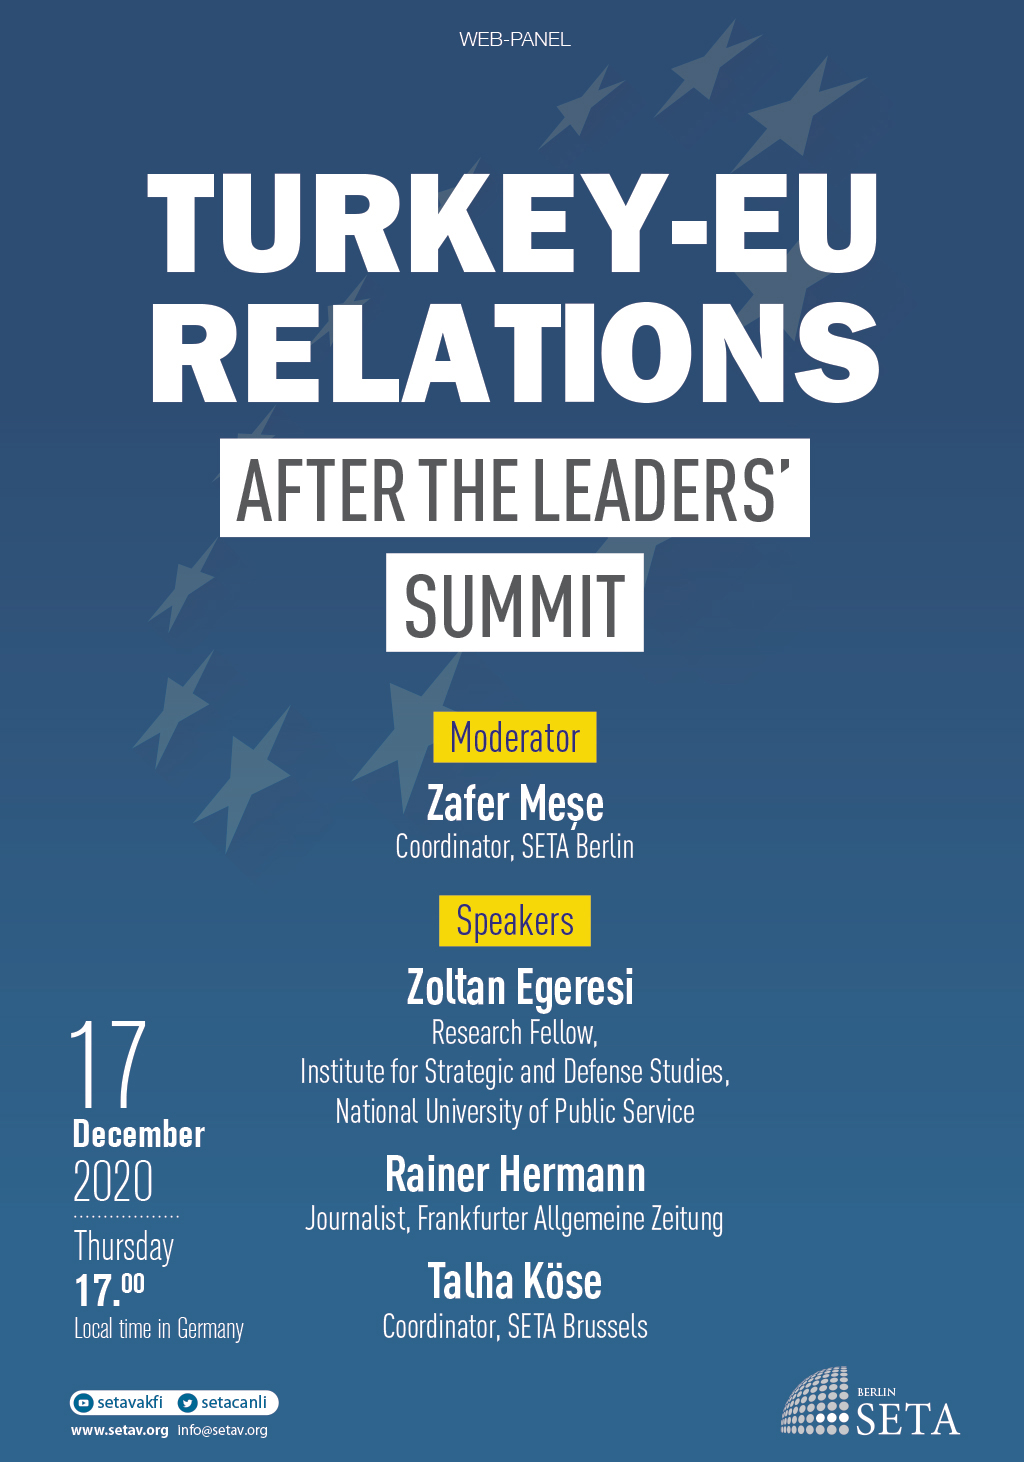 Web Panel: Turkey-EU Relations After the Leaders' Summit